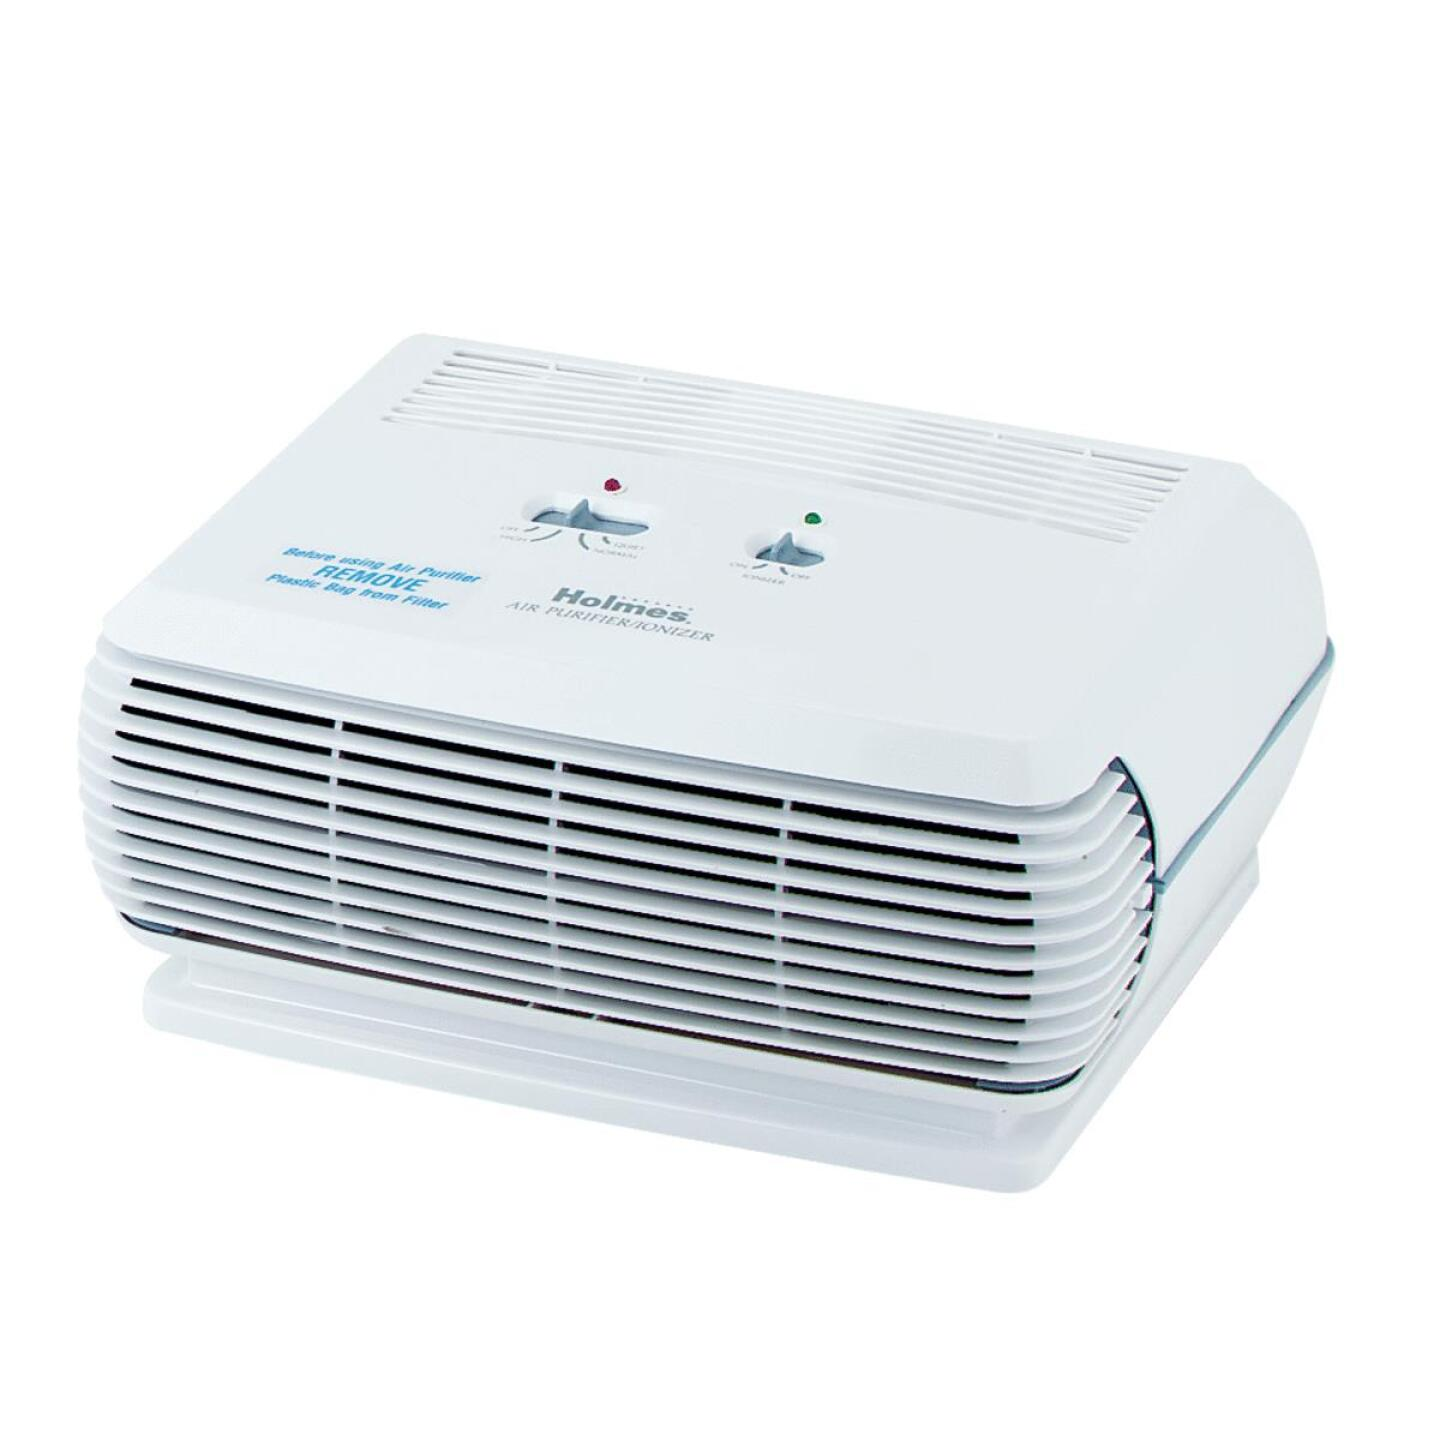 Holmes Harmony HEPA 110 Sq. Ft. White Tabletop Air Purifier Image 1